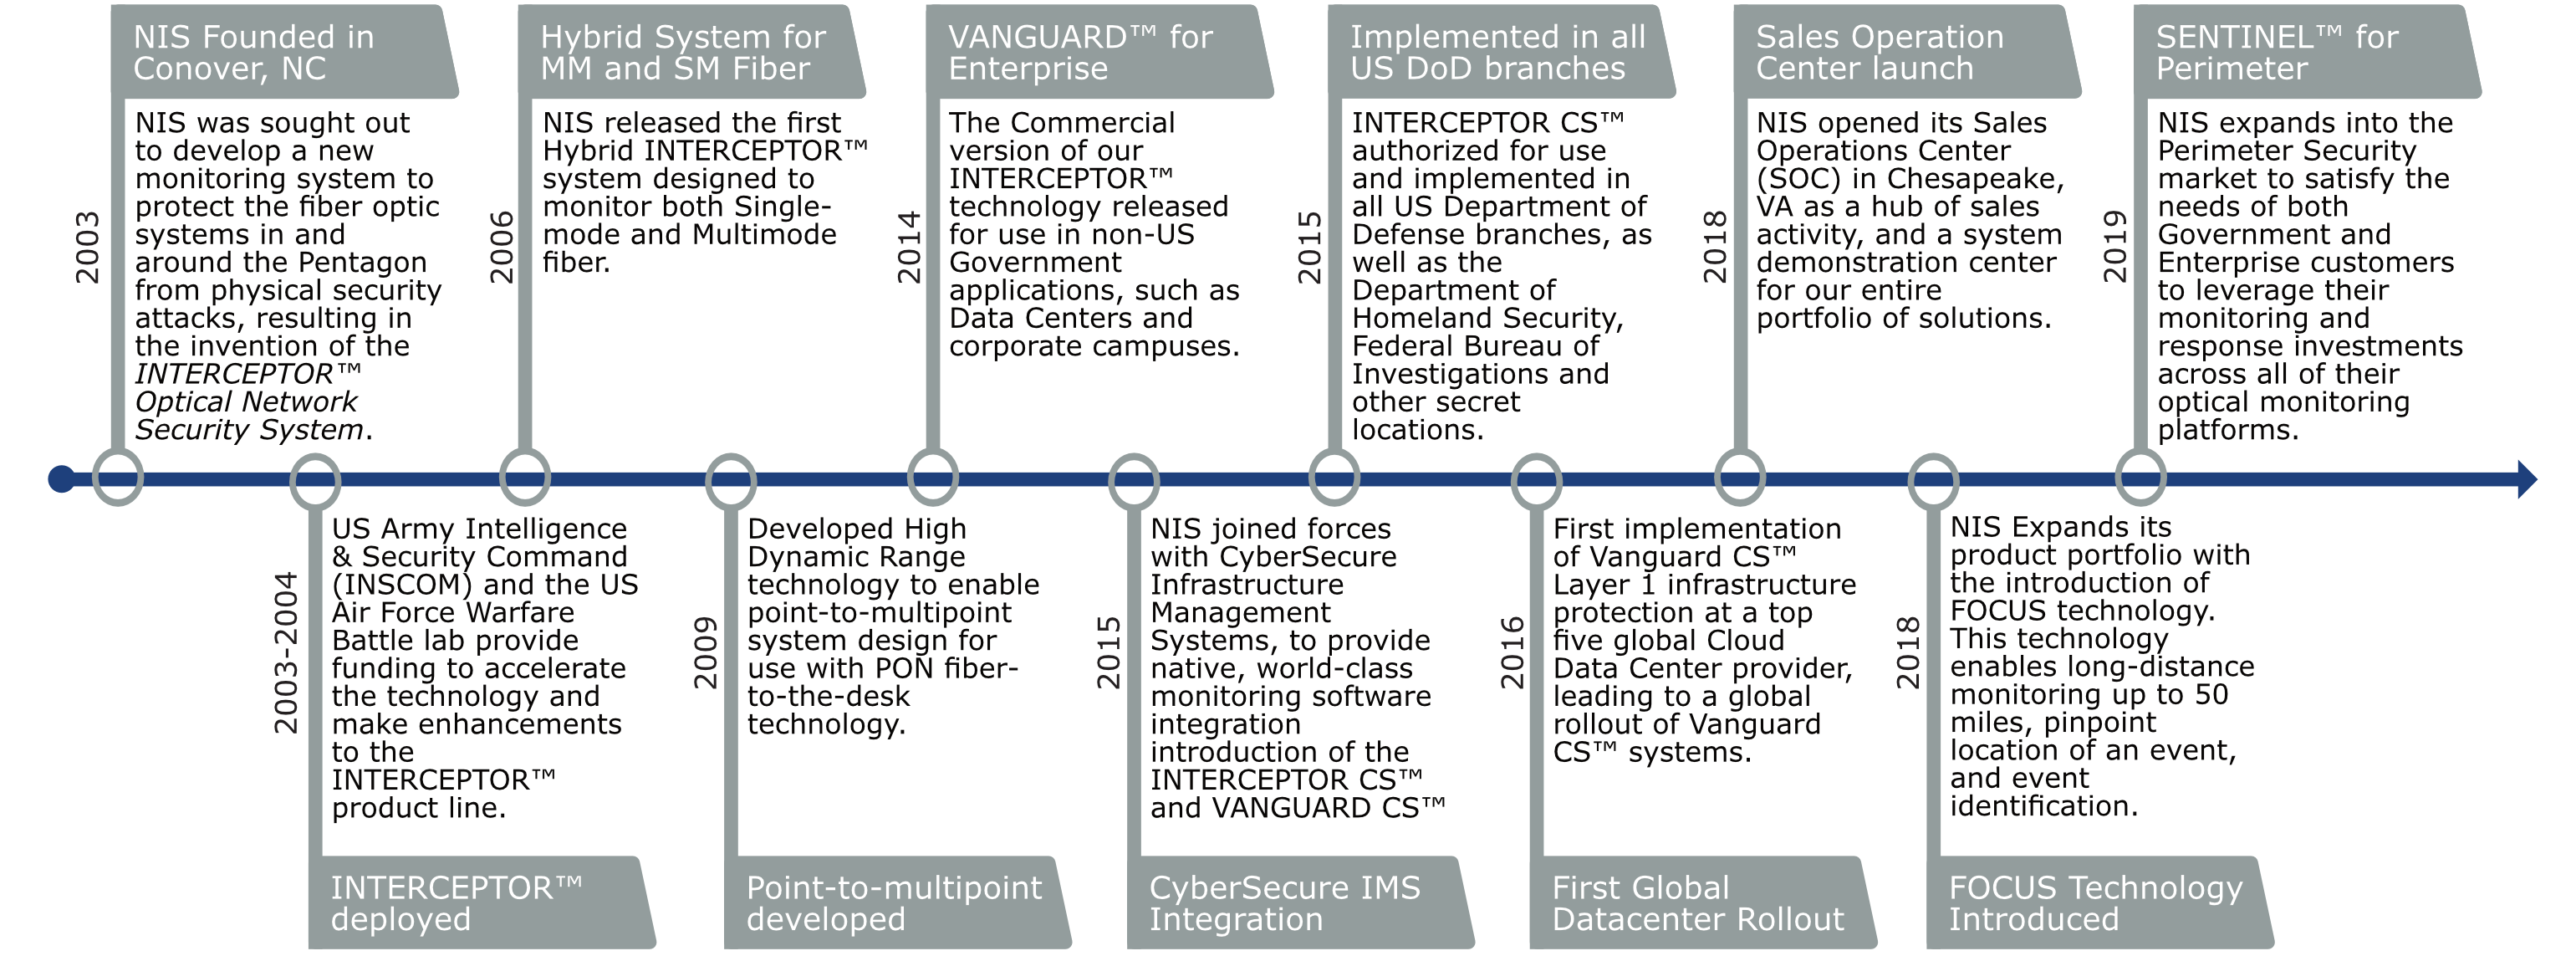 Corporate One-Pager timeline